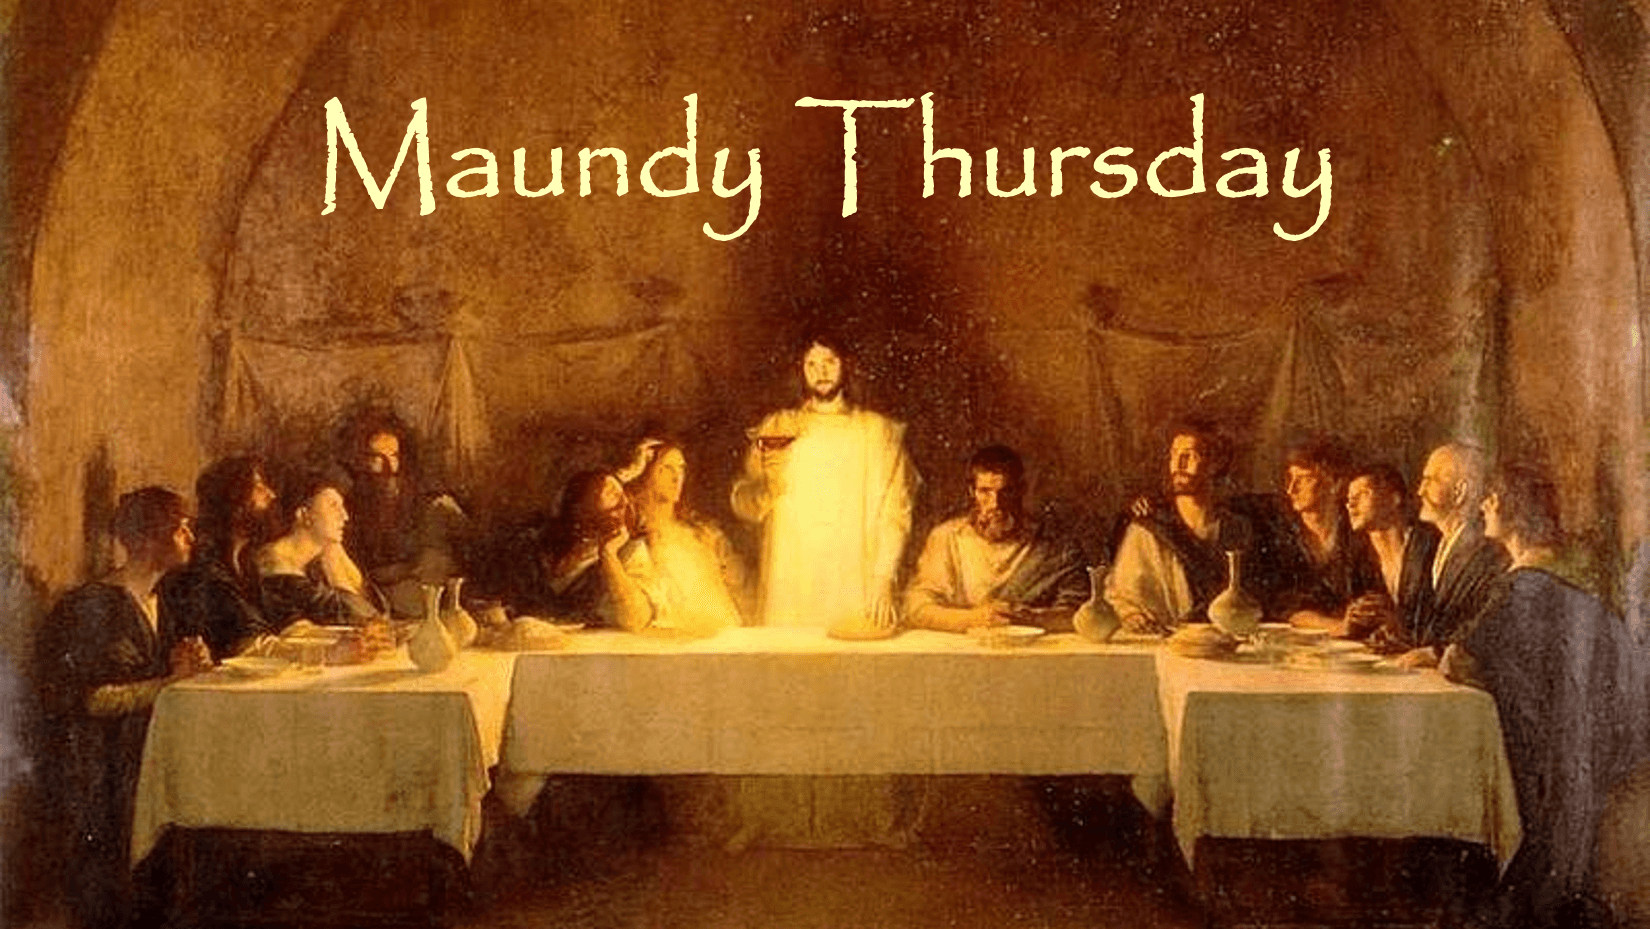 Maundy Thursday (Holy Thursday) 2019 Wishes, Quotes, Prayers, Images, Messages